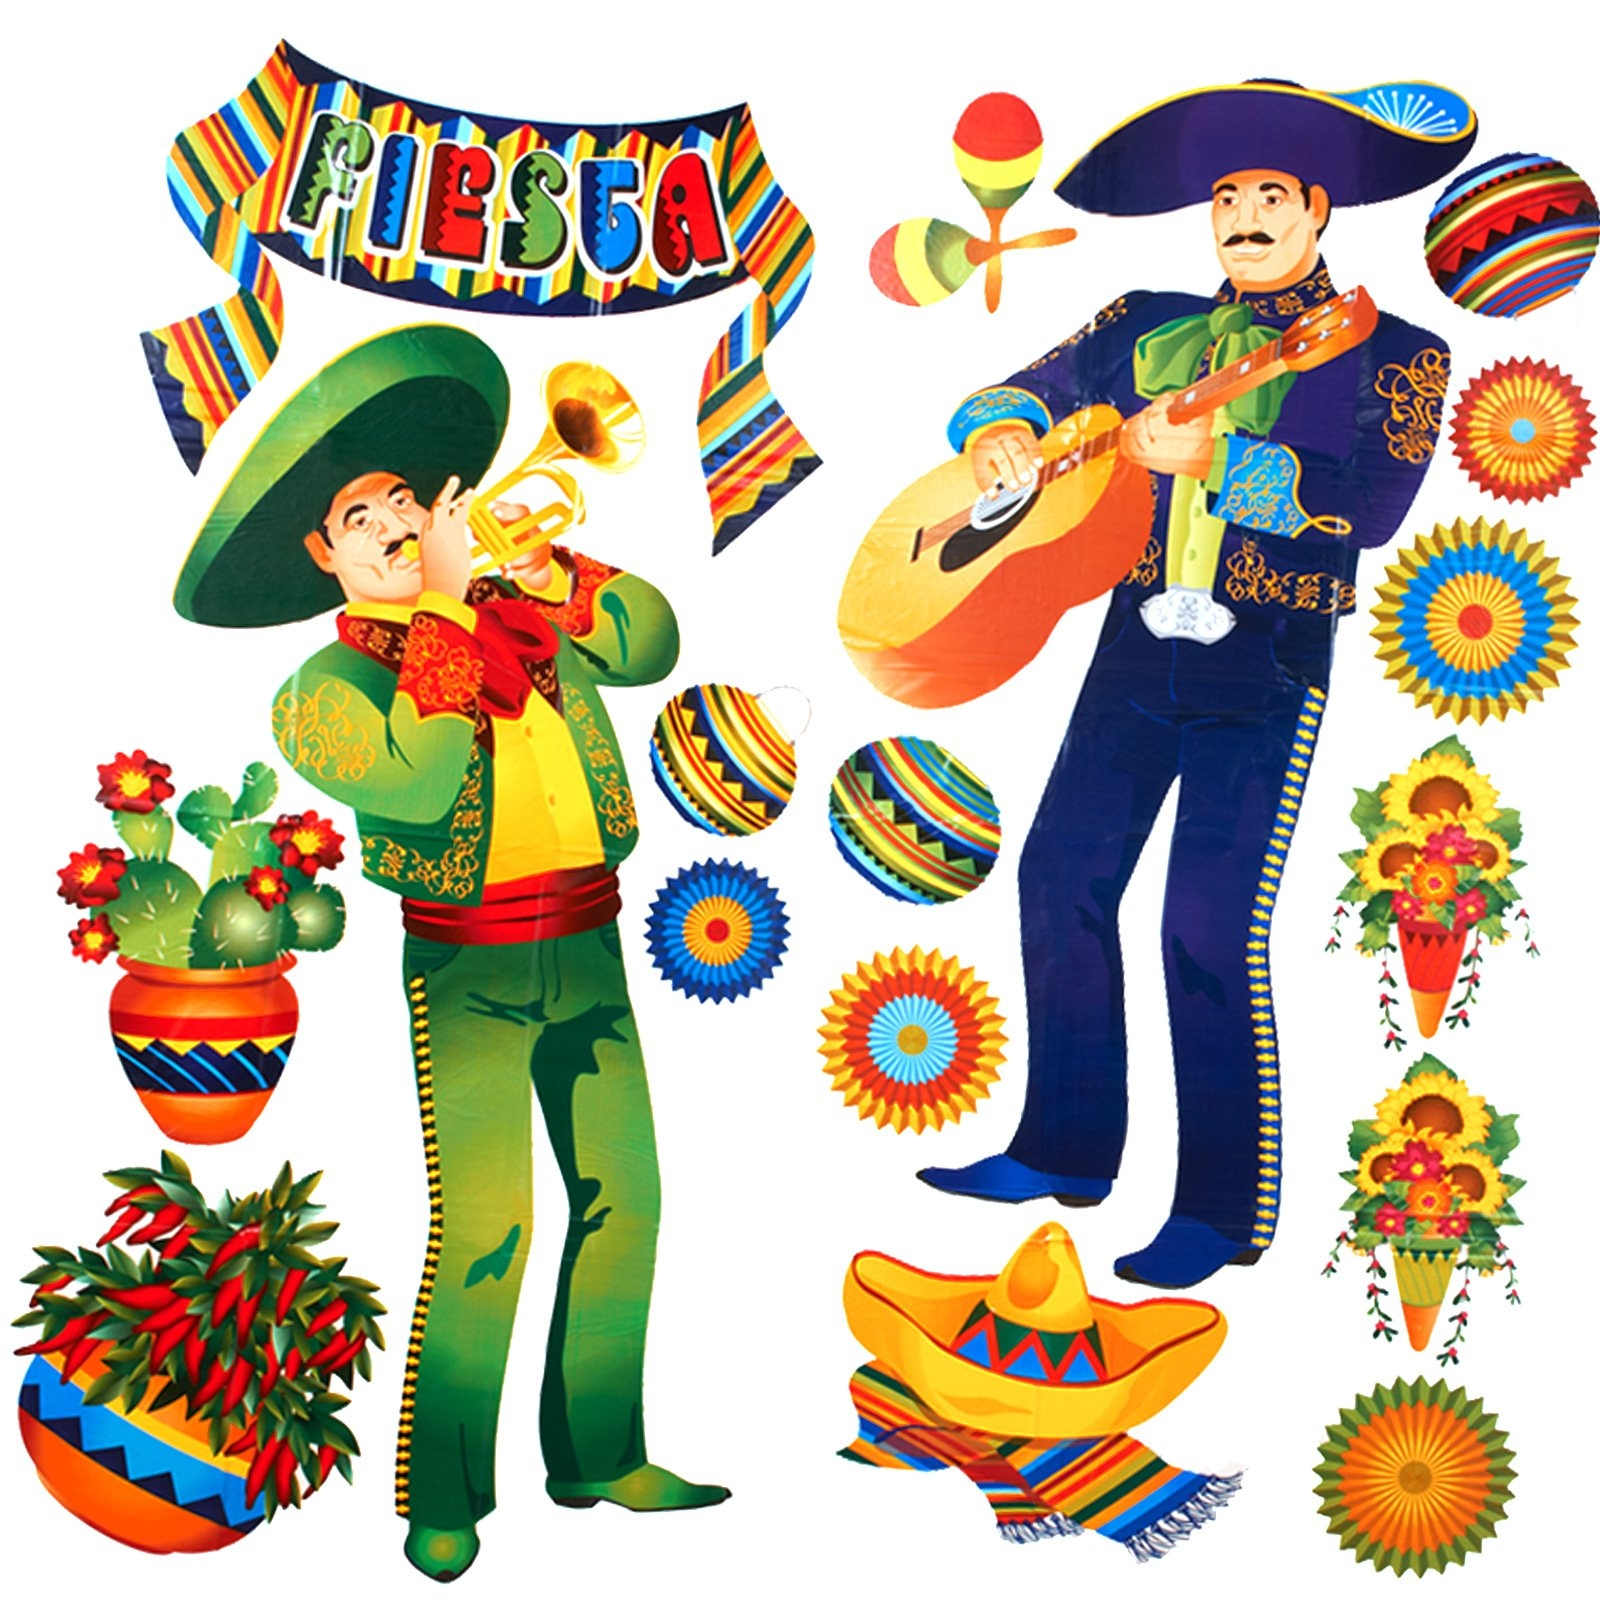 Decoration clipart mexican decoration Pantry Decorations Mexican Subway Design